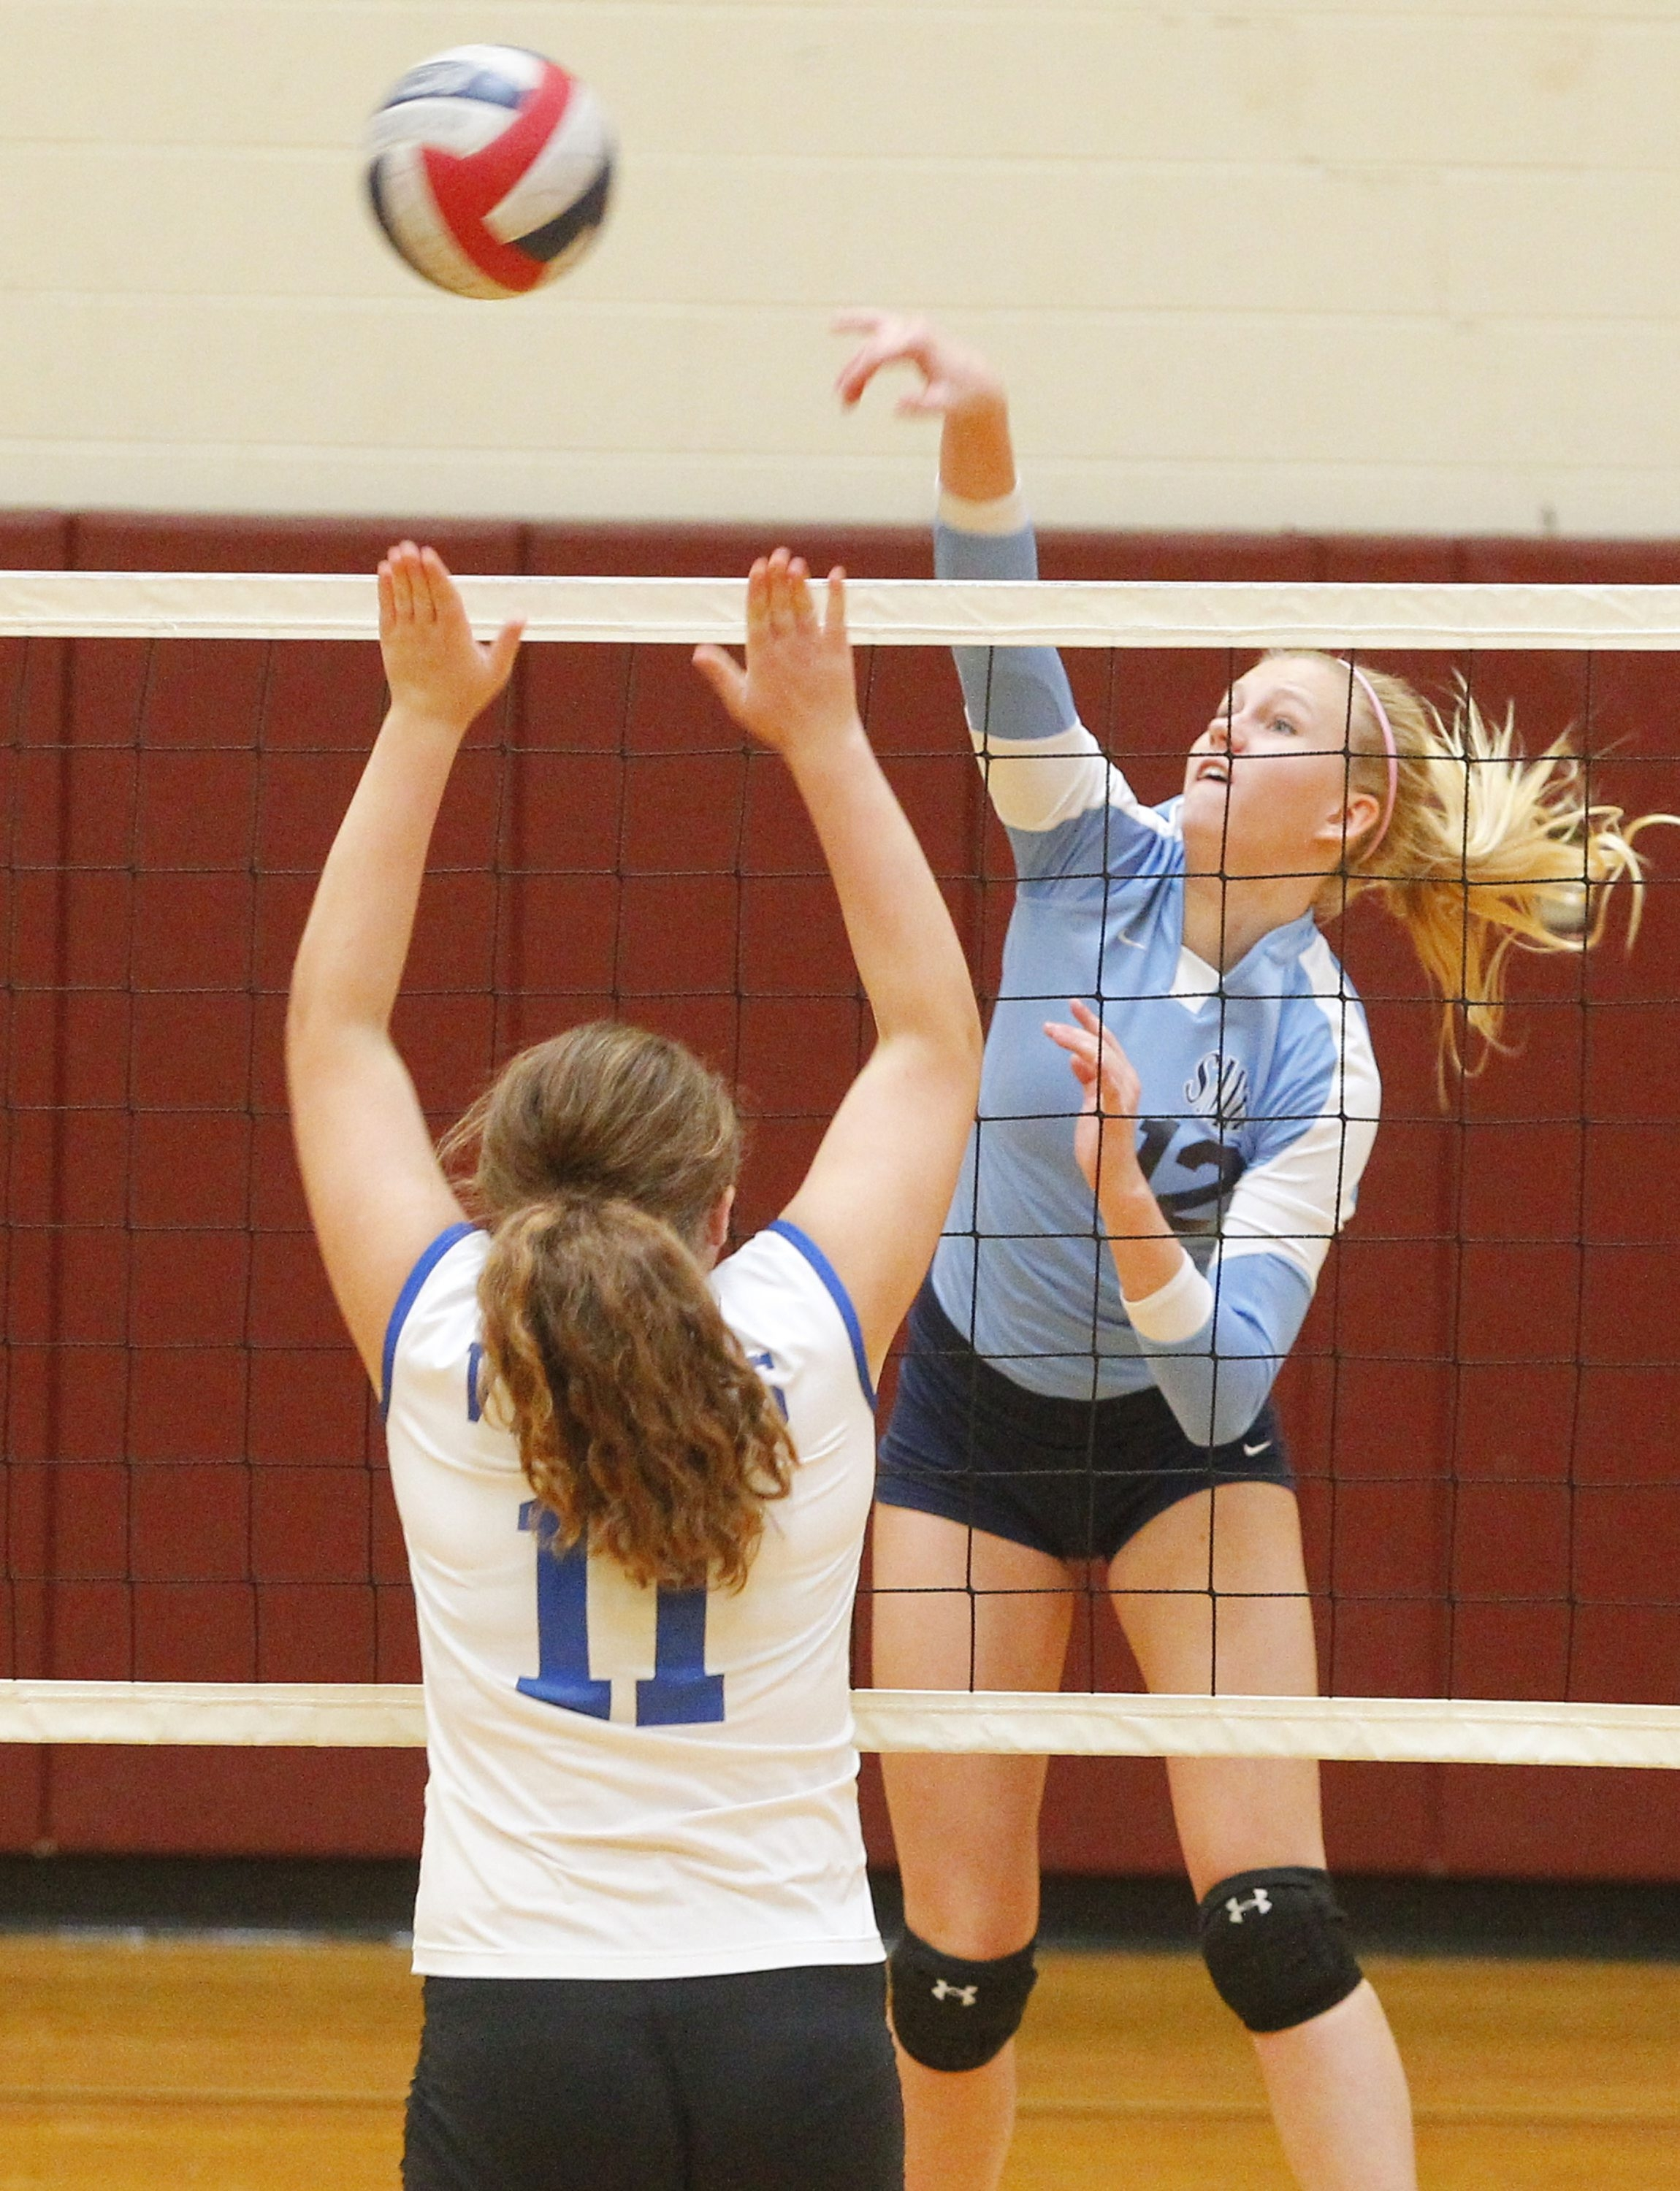 John Hickey / Buffalo News    Jackie Steck was named all-tournament as St. Mary's defended its title at the Eden Girls Volleyball Tournament.